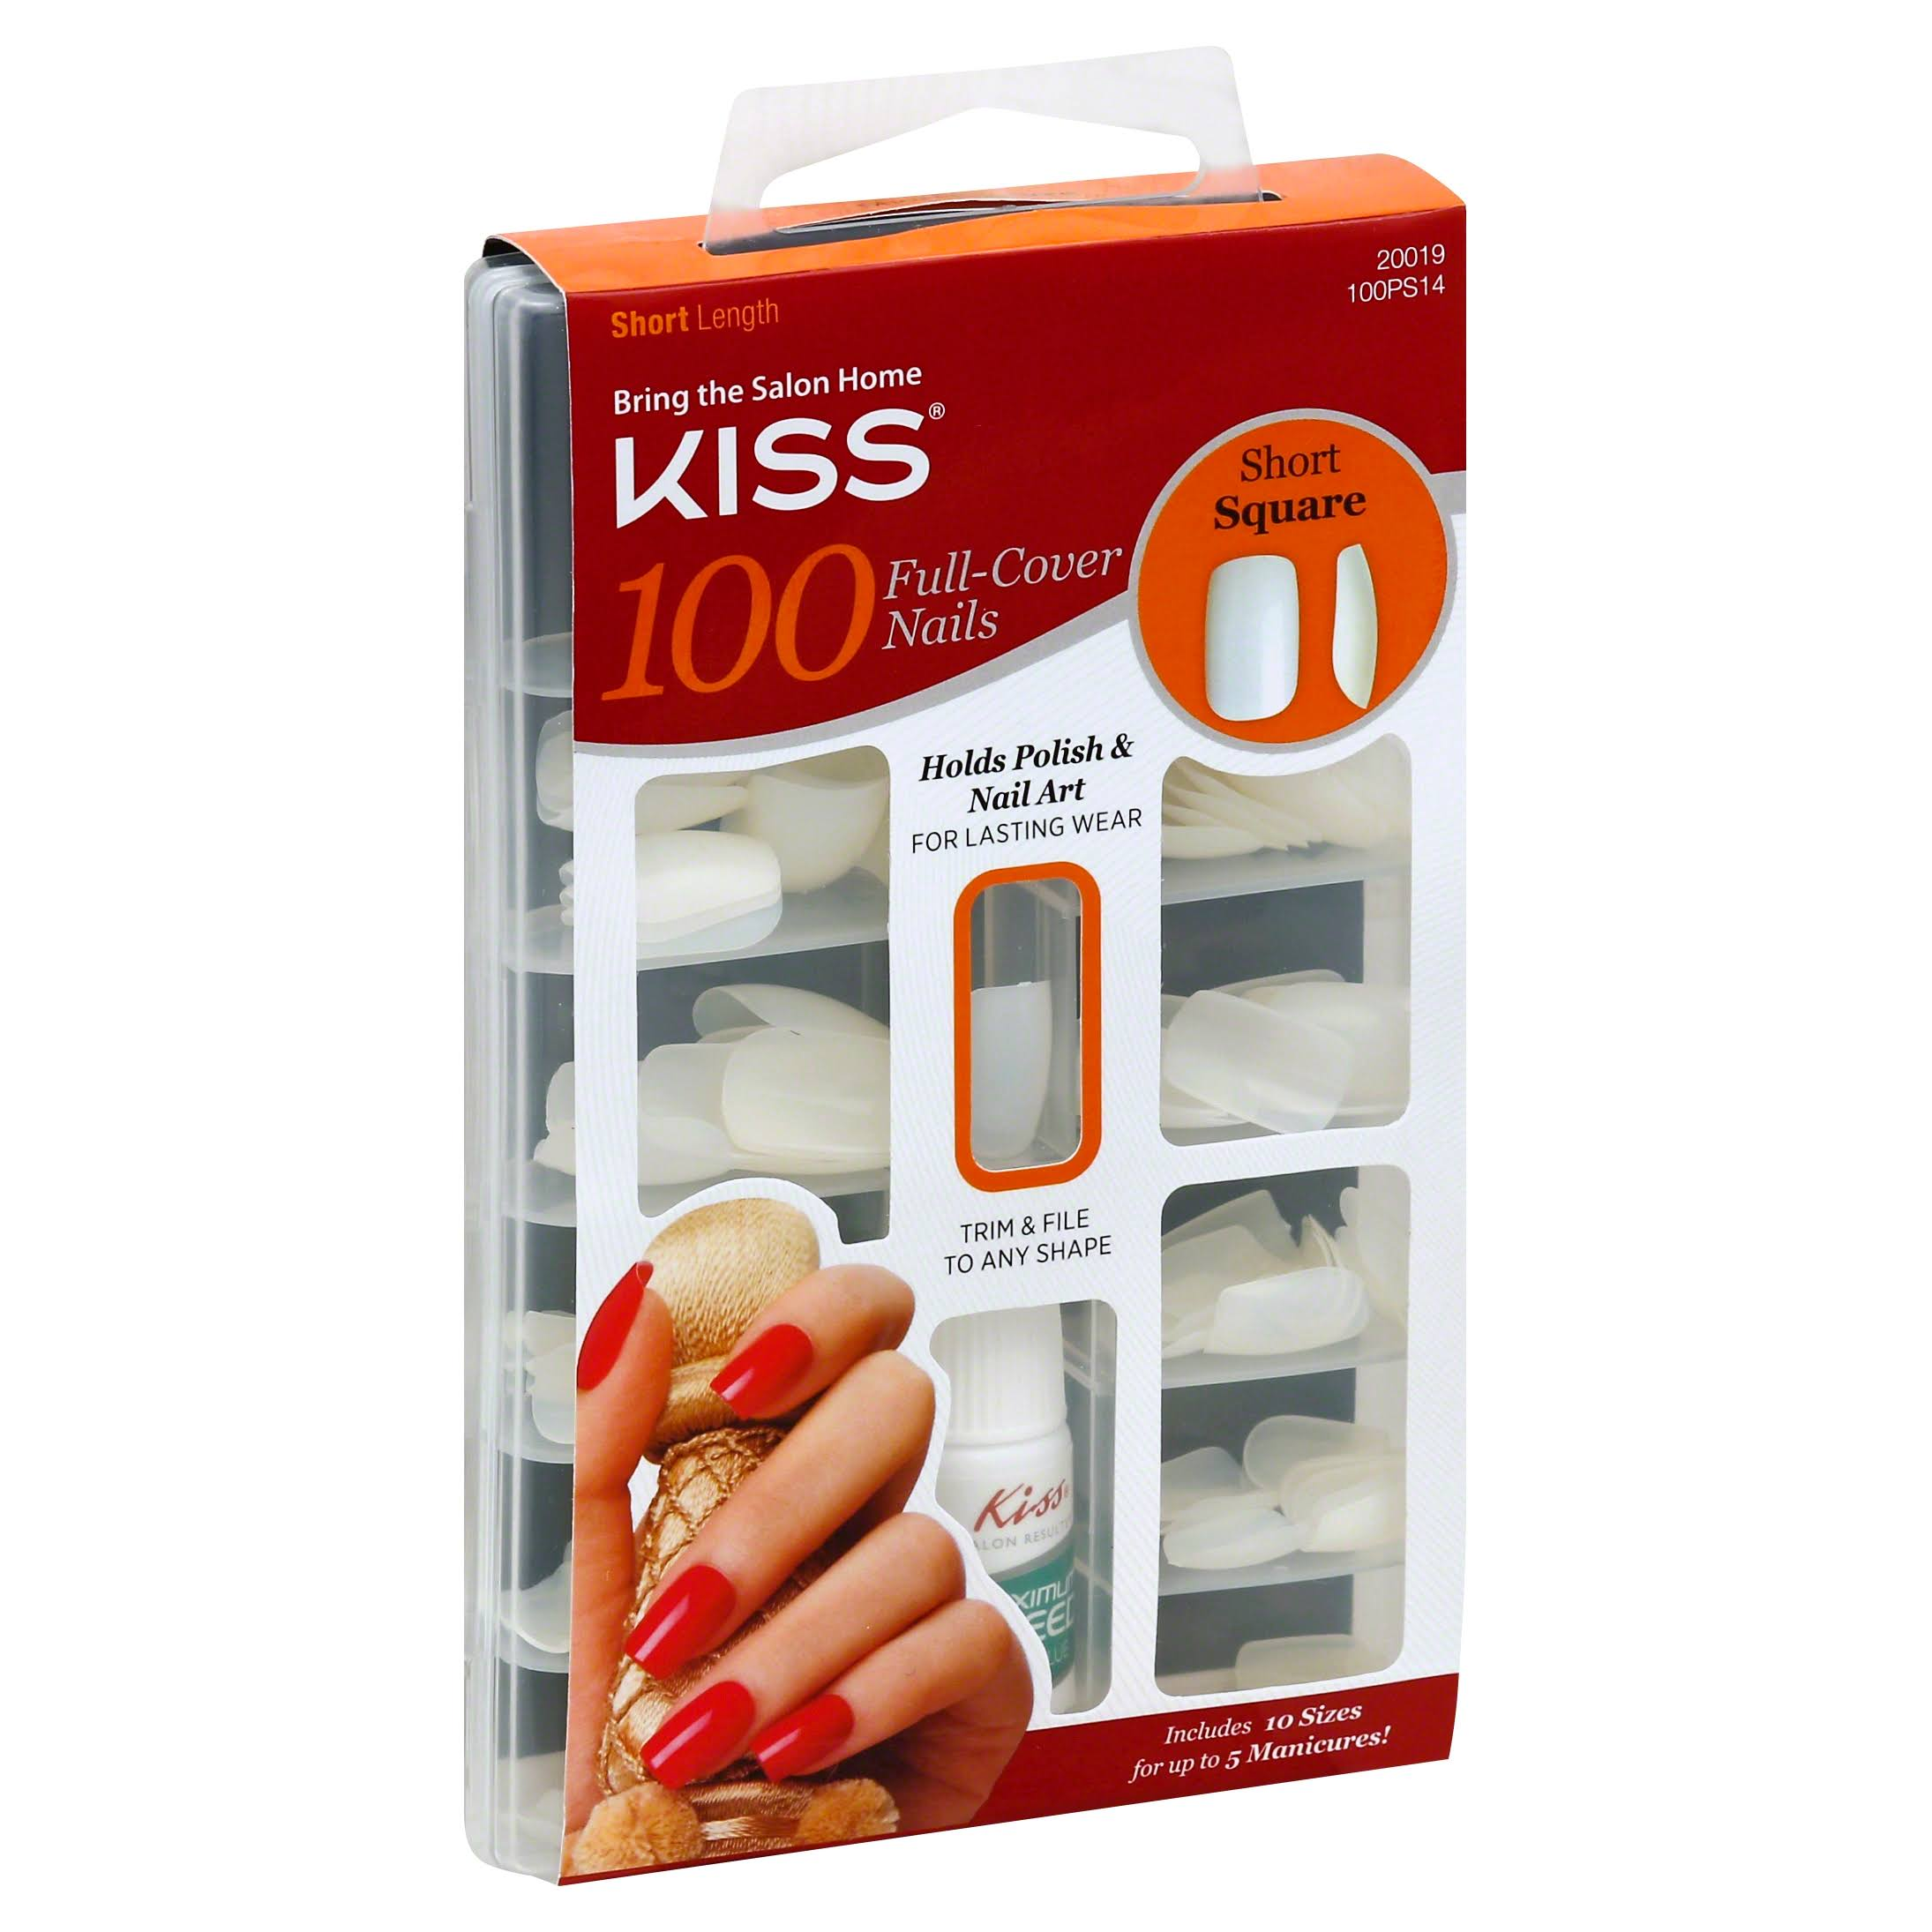 Kiss Nails - 100 Full Cover Nails, Short Square